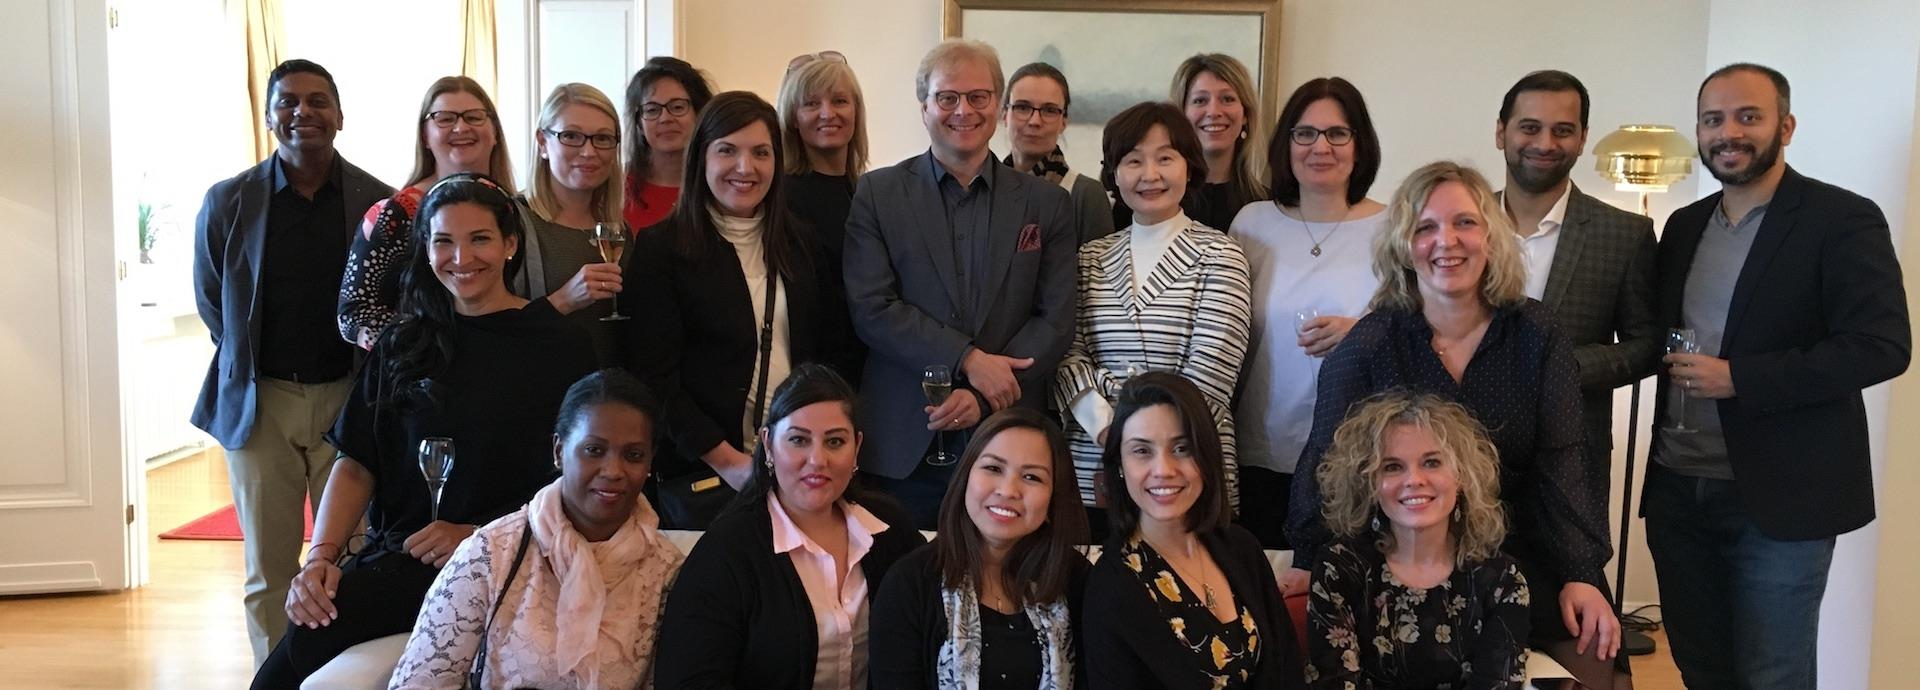 The Wärtsilä Communications and Branding team at a rare in-person meeting in April 2018